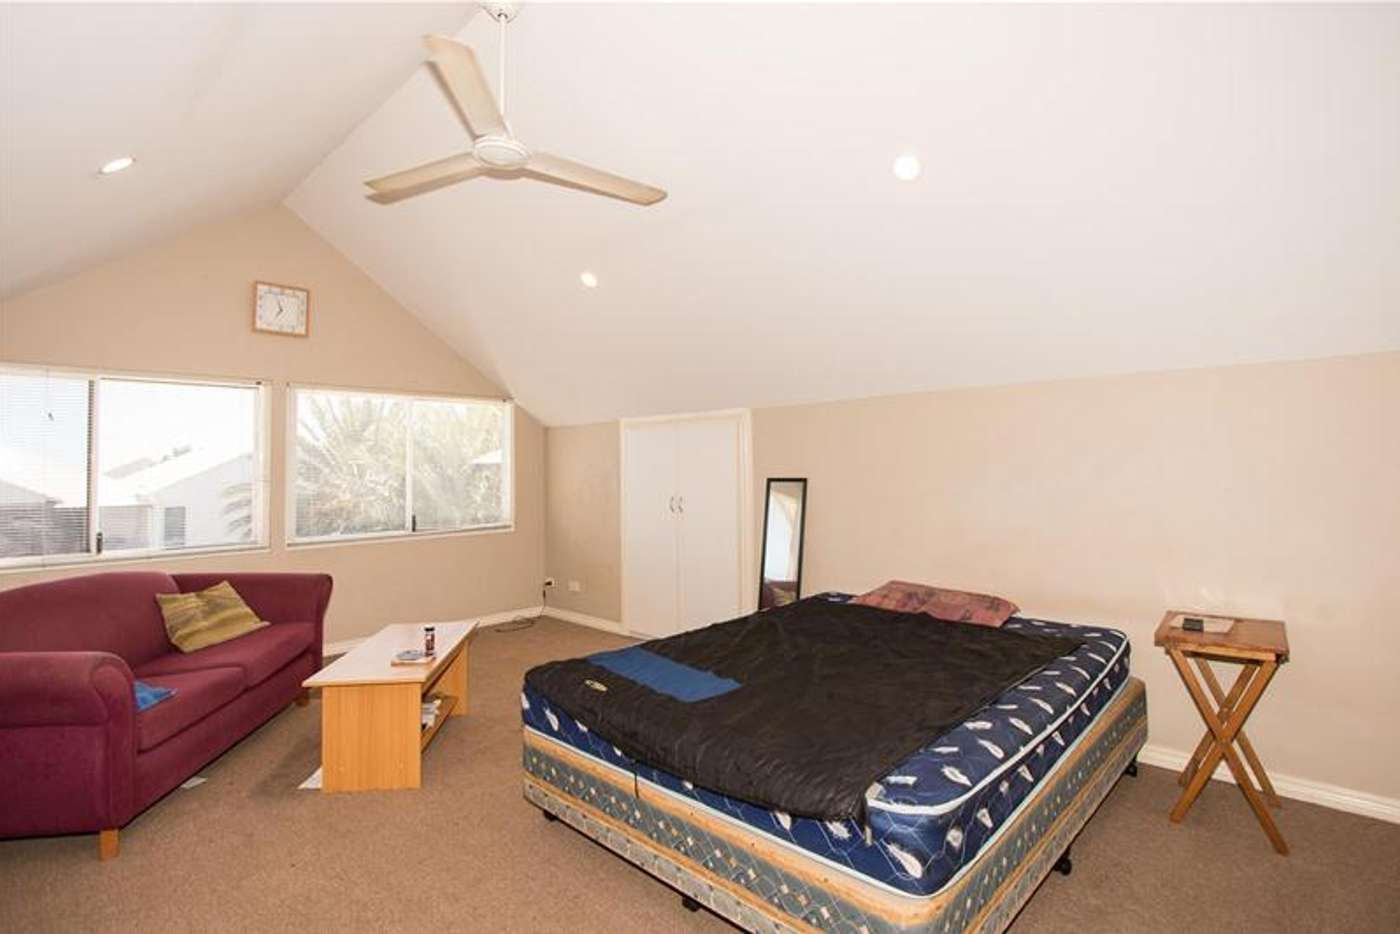 Sixth view of Homely unit listing, 2b/46 Dampier Terrace, Broome WA 6725